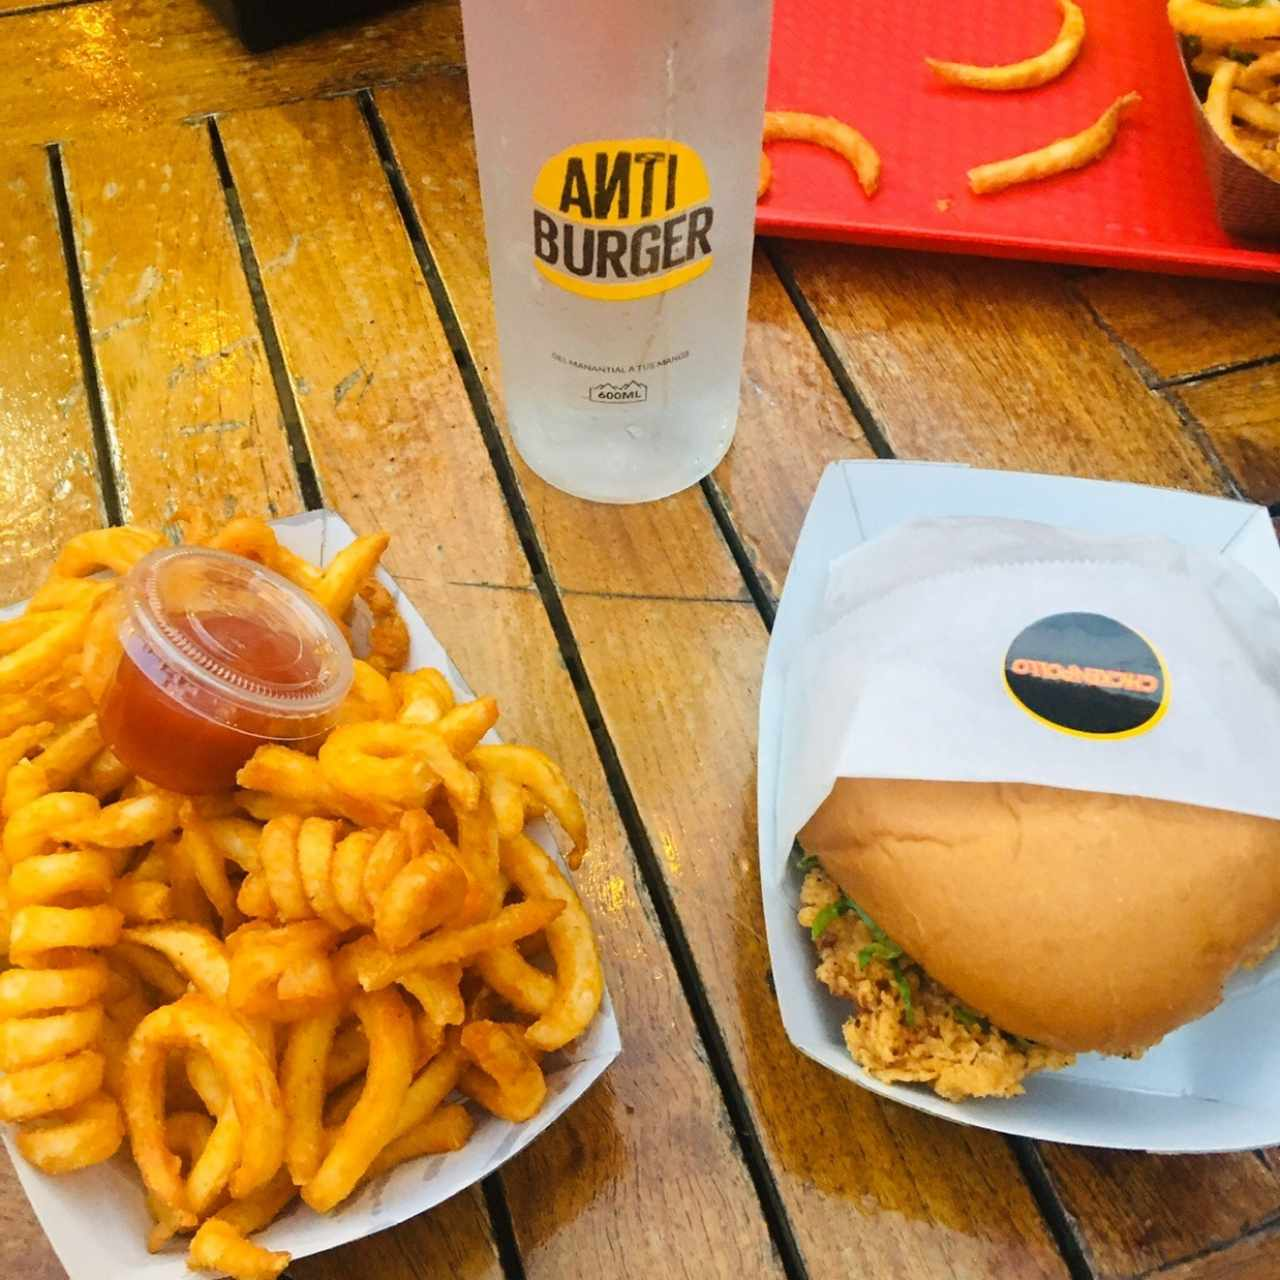 Chicken burger y anti fries